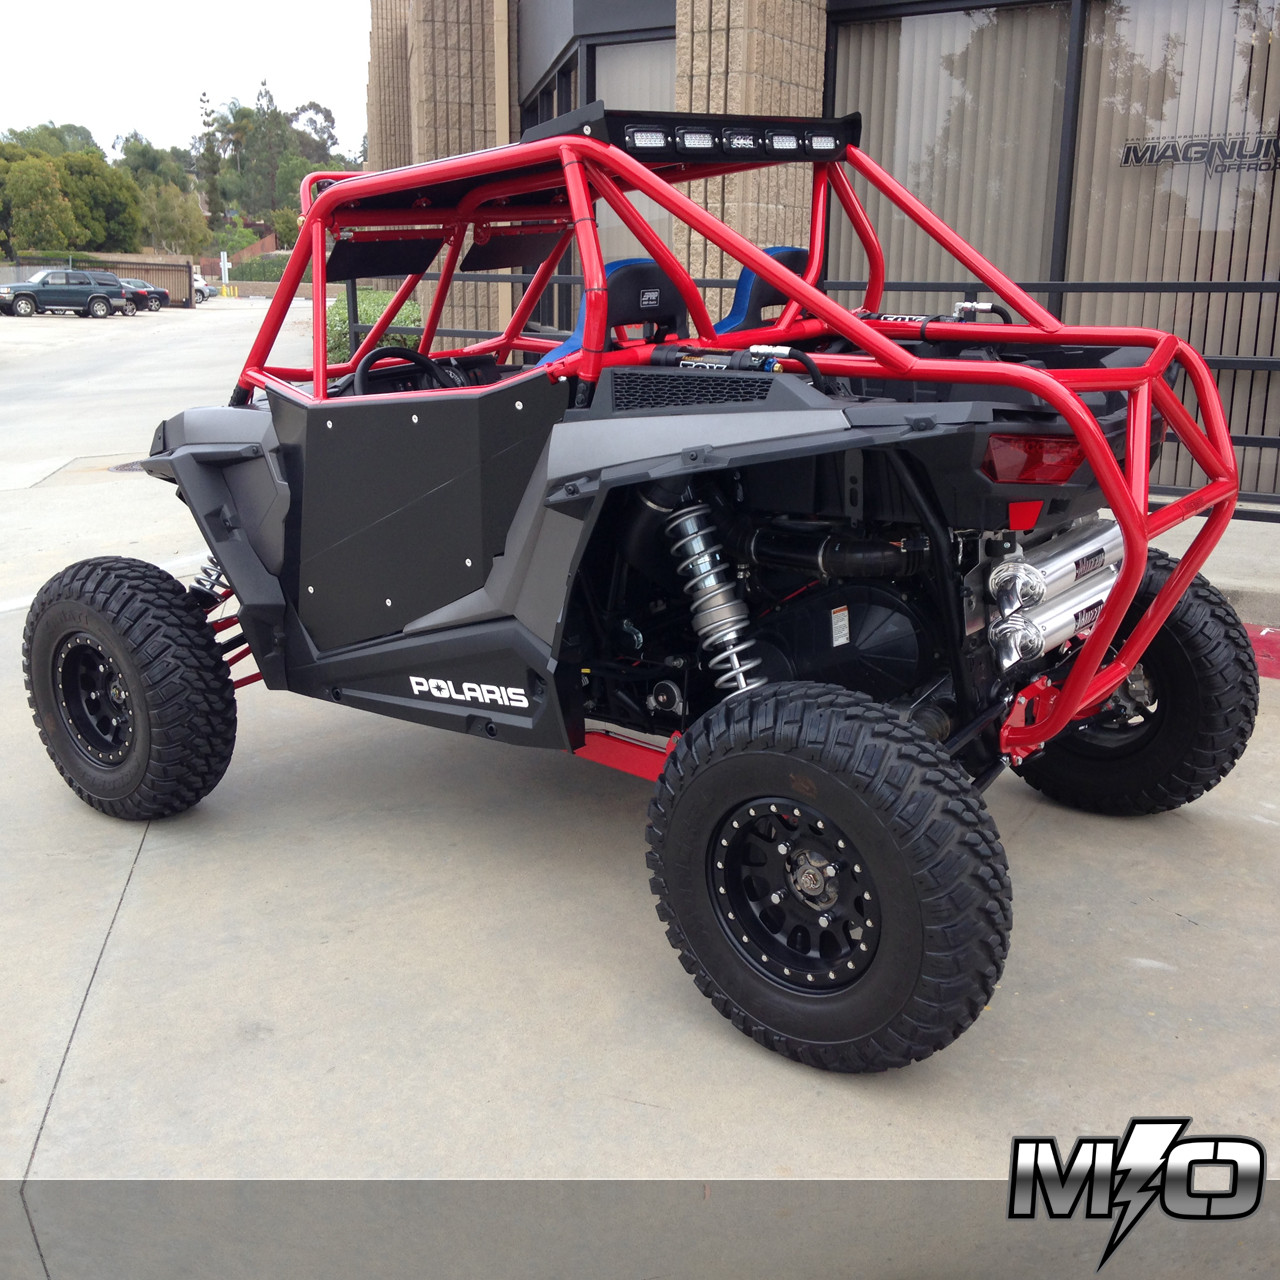 Polaris Rzr Xp 1000 Mx1 Roll Cage System Magnum Offroad